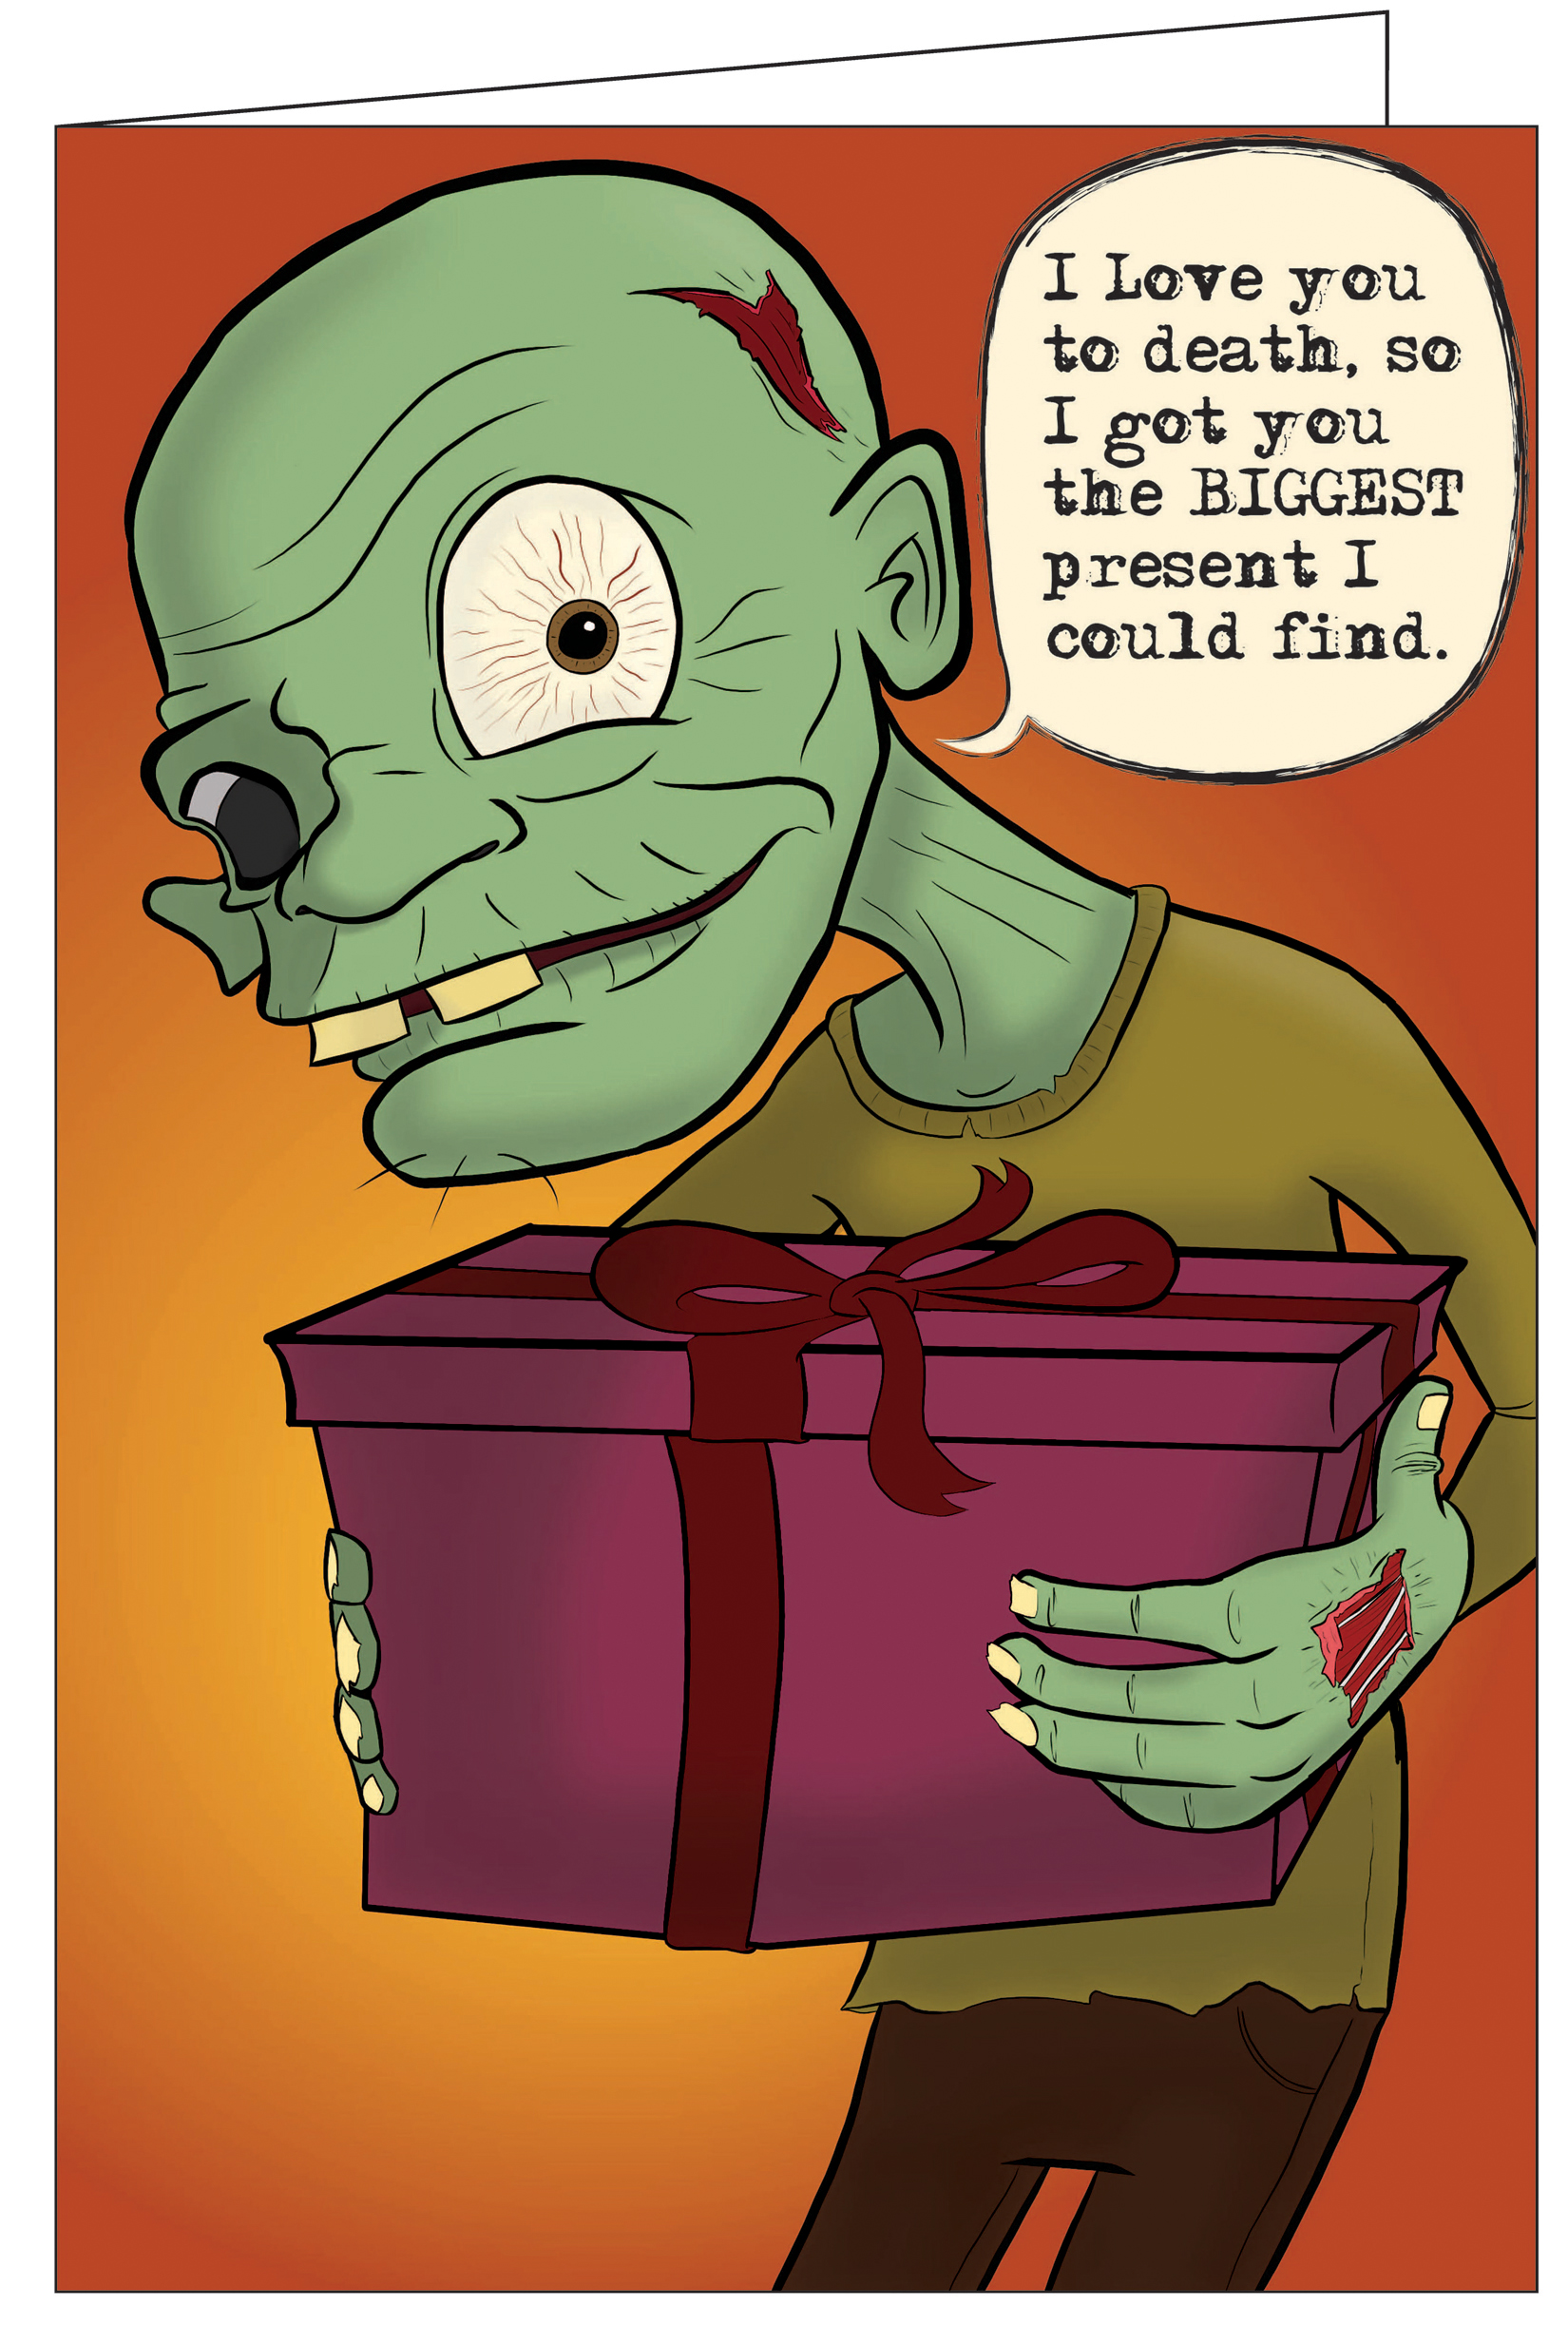 Giant really big greeting cards published in st louis mo zombie love really big greeting card165 x 245 donkey happy birthday kristyandbryce Choice Image